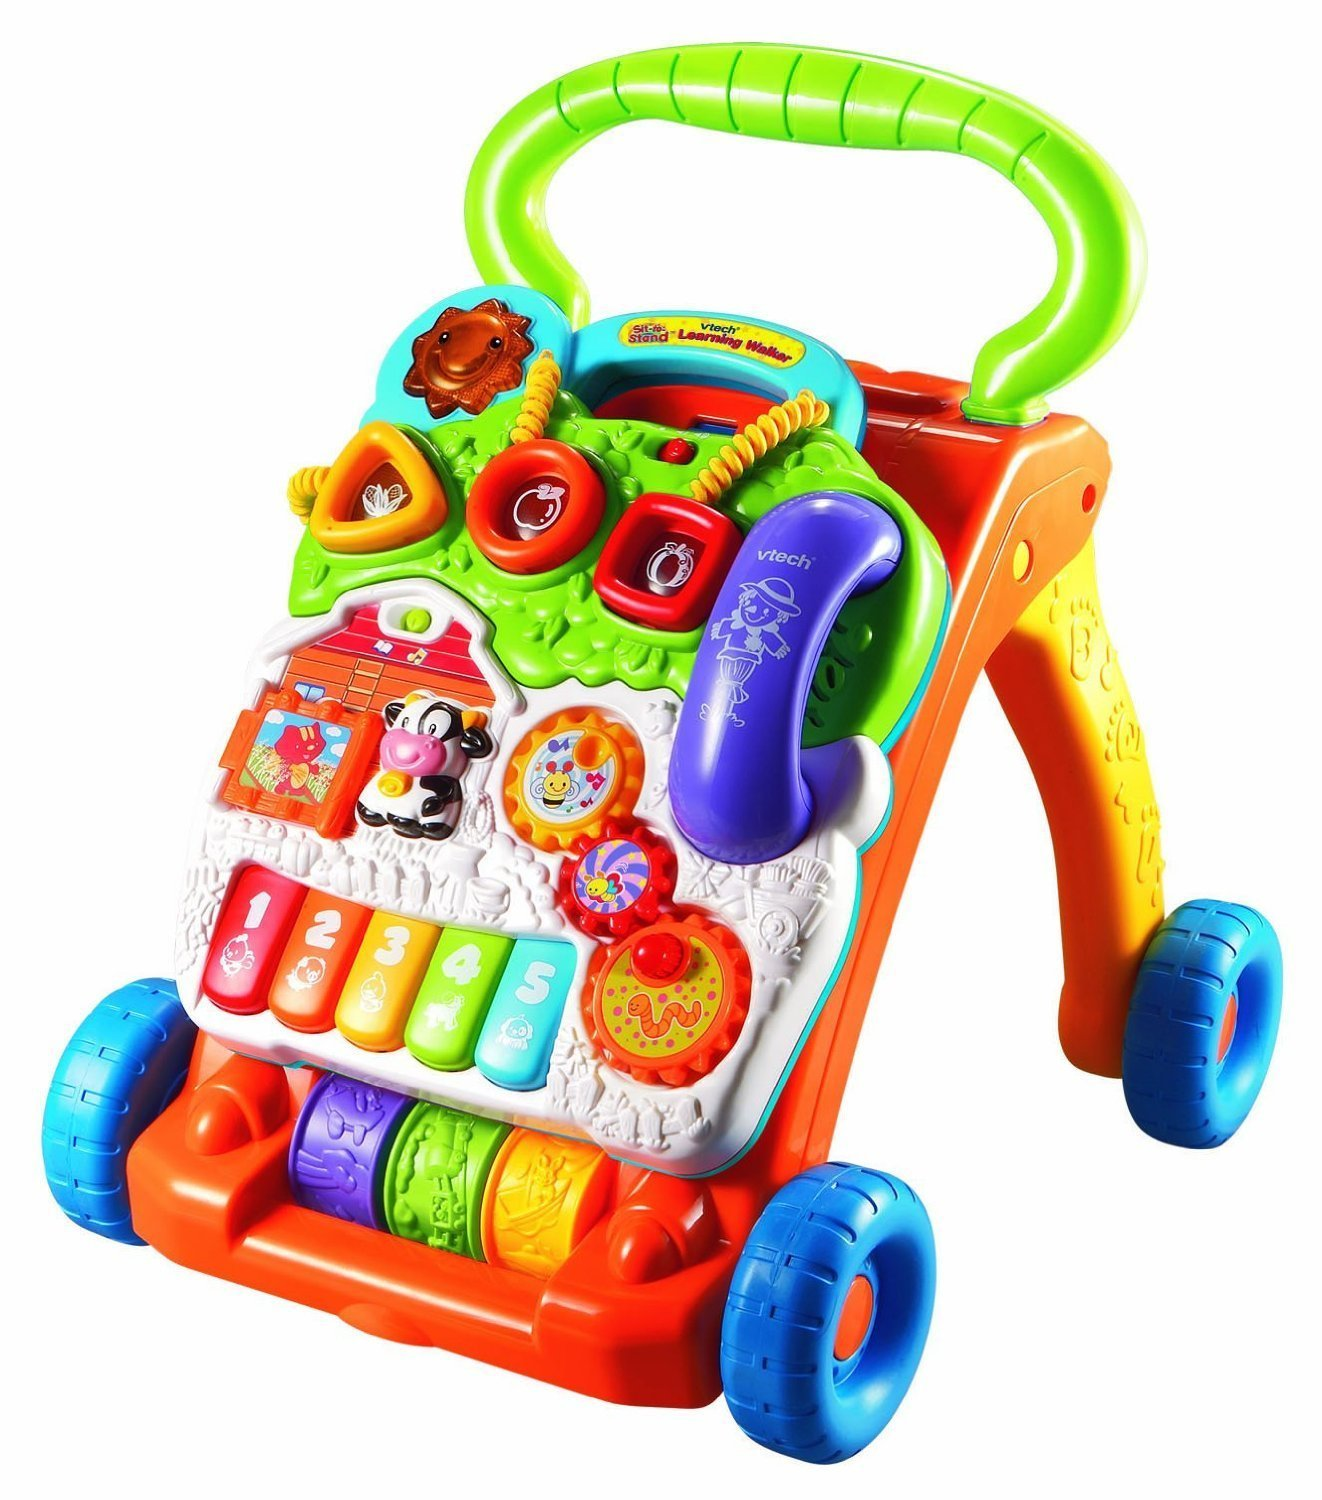 VTech Sit to Stand Learning Walker Amazon Toys & Games